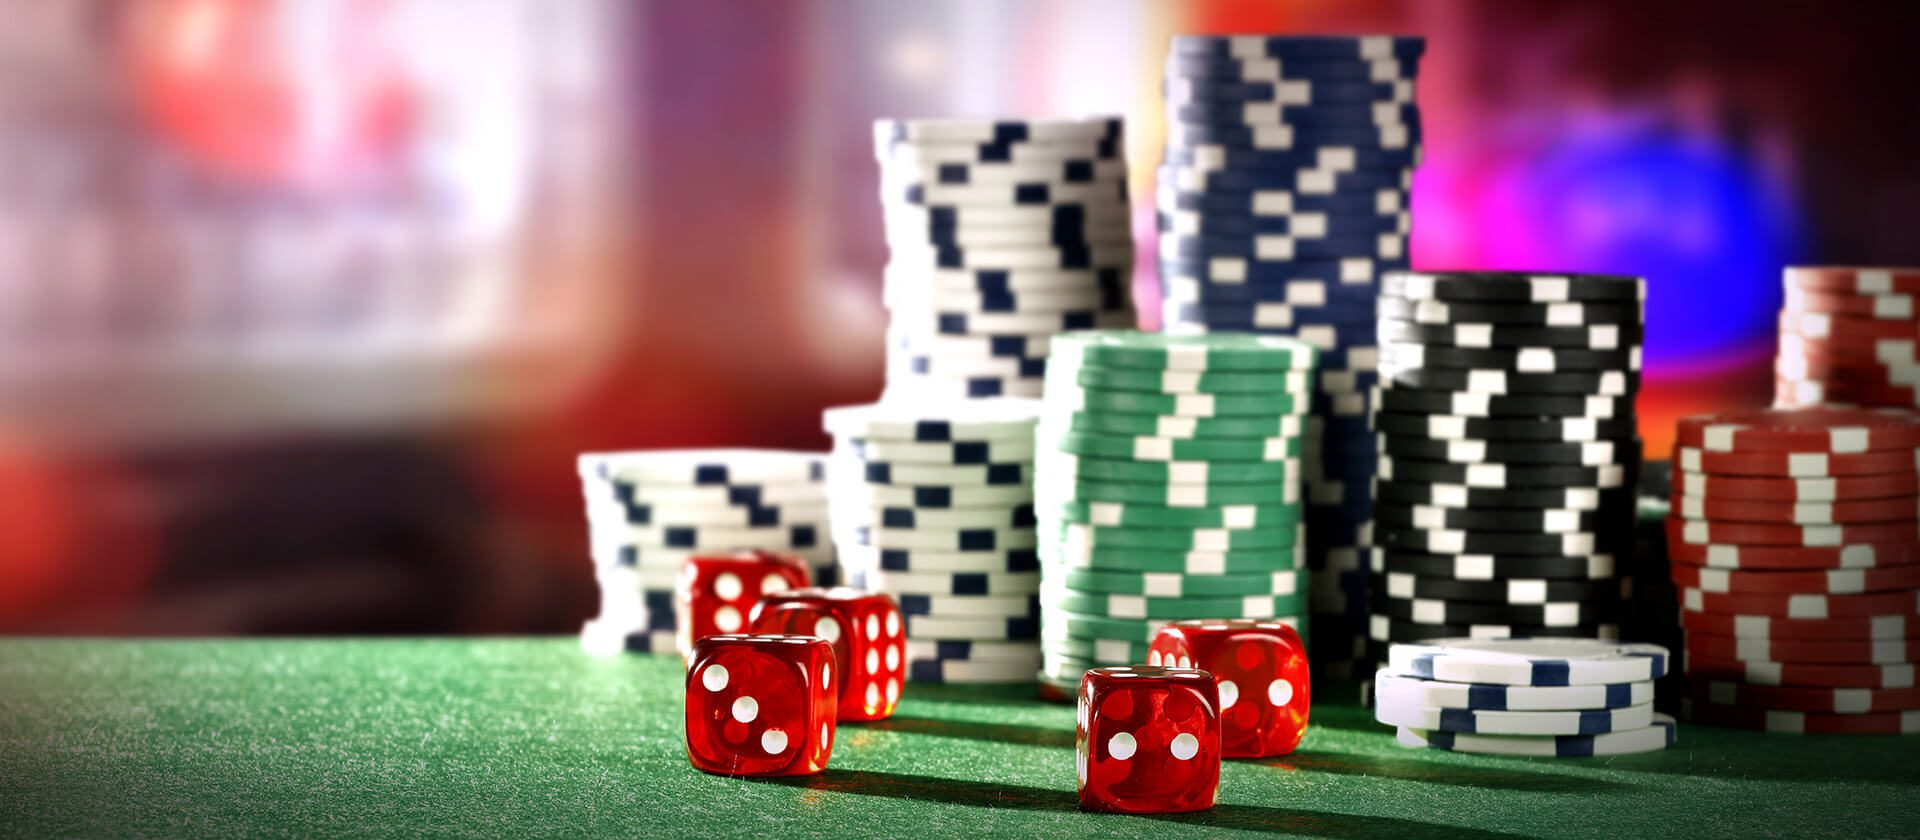 A casino table with chips and dice